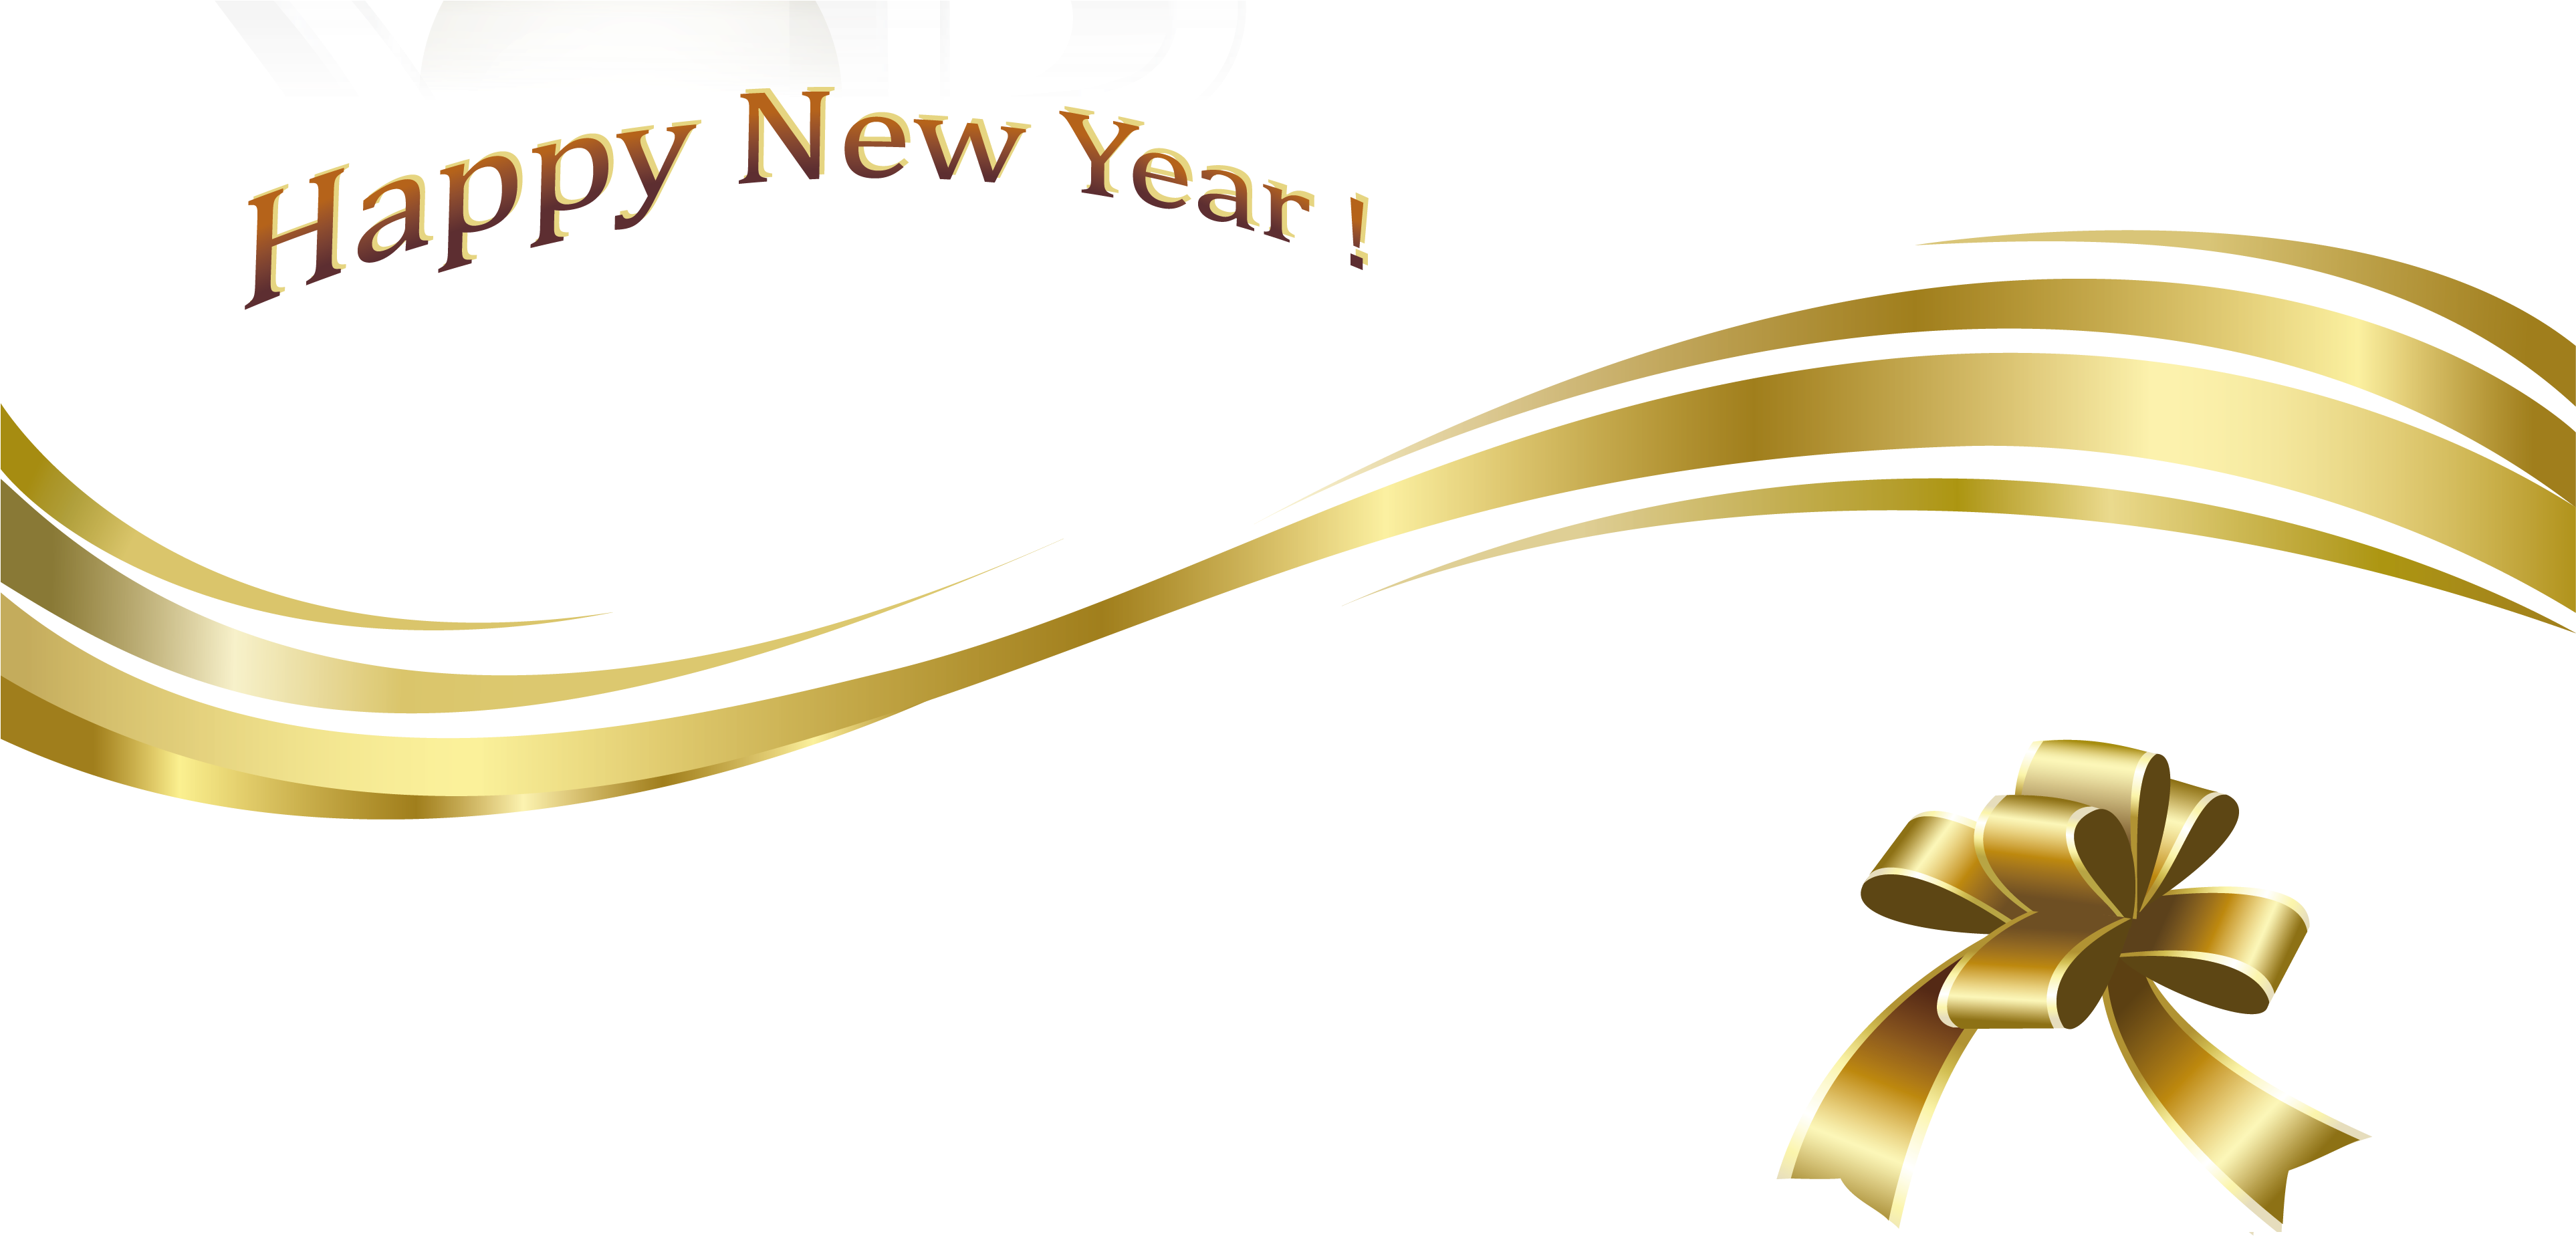 Gold New Year Png Images Happy Holidays Pictures Happy New Year 2019 In Png Transparent Cartoon Jing Fm Upgrade to save unlimited icons. gold new year png images happy holidays